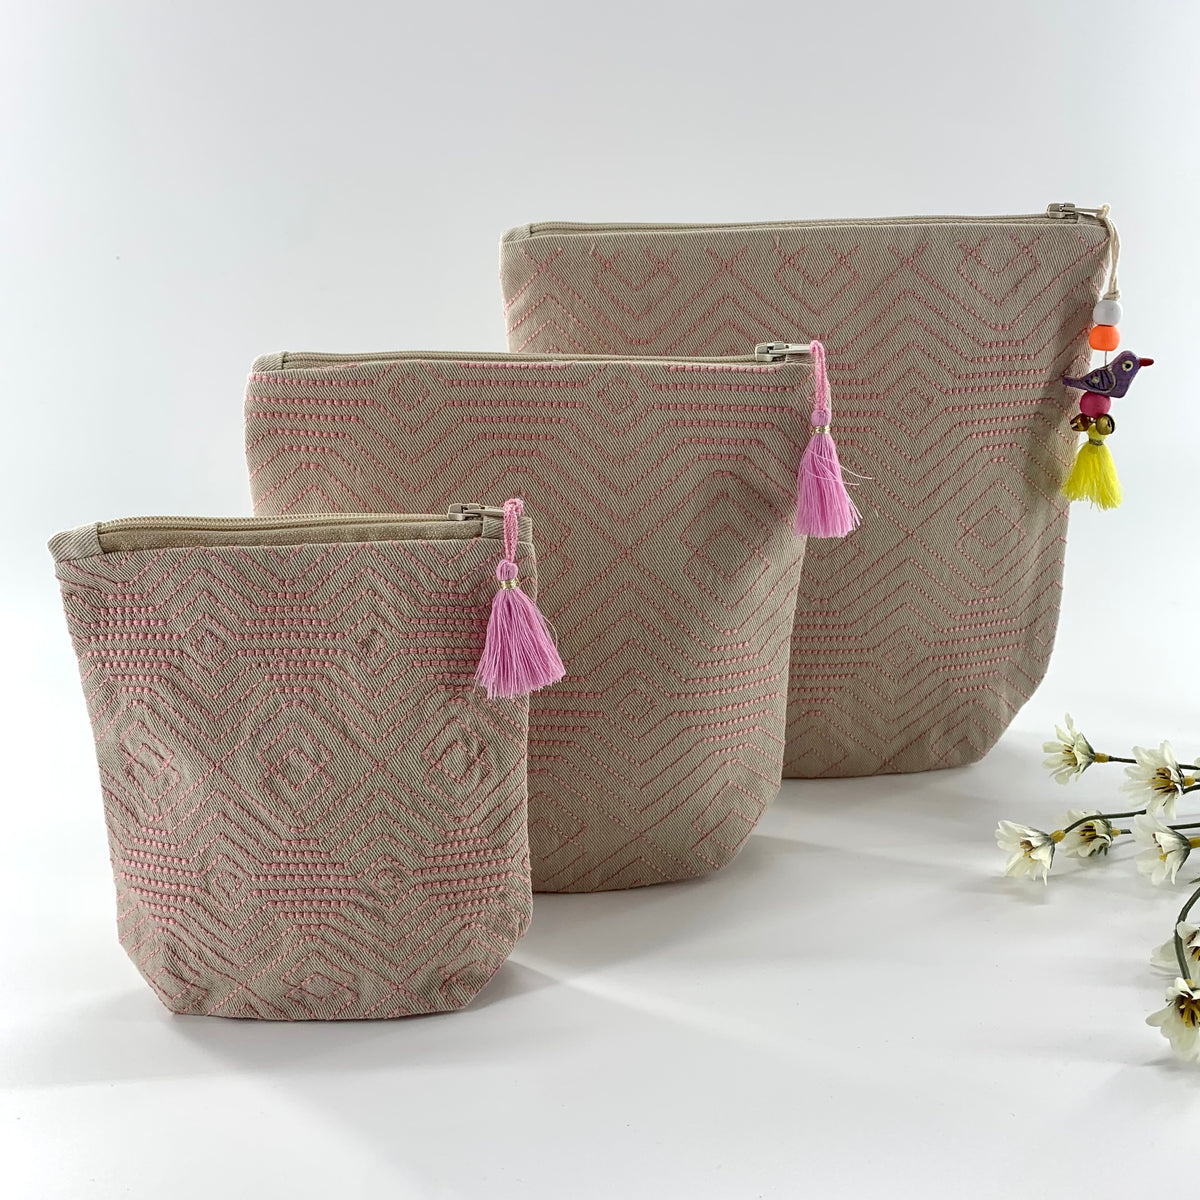 Pink Elephant Wallets  Zipper Pouch  Hand Embroidered Bag  Cotton Canvas Wallet  Pink /& Blue Coin Purse  Made in Maine